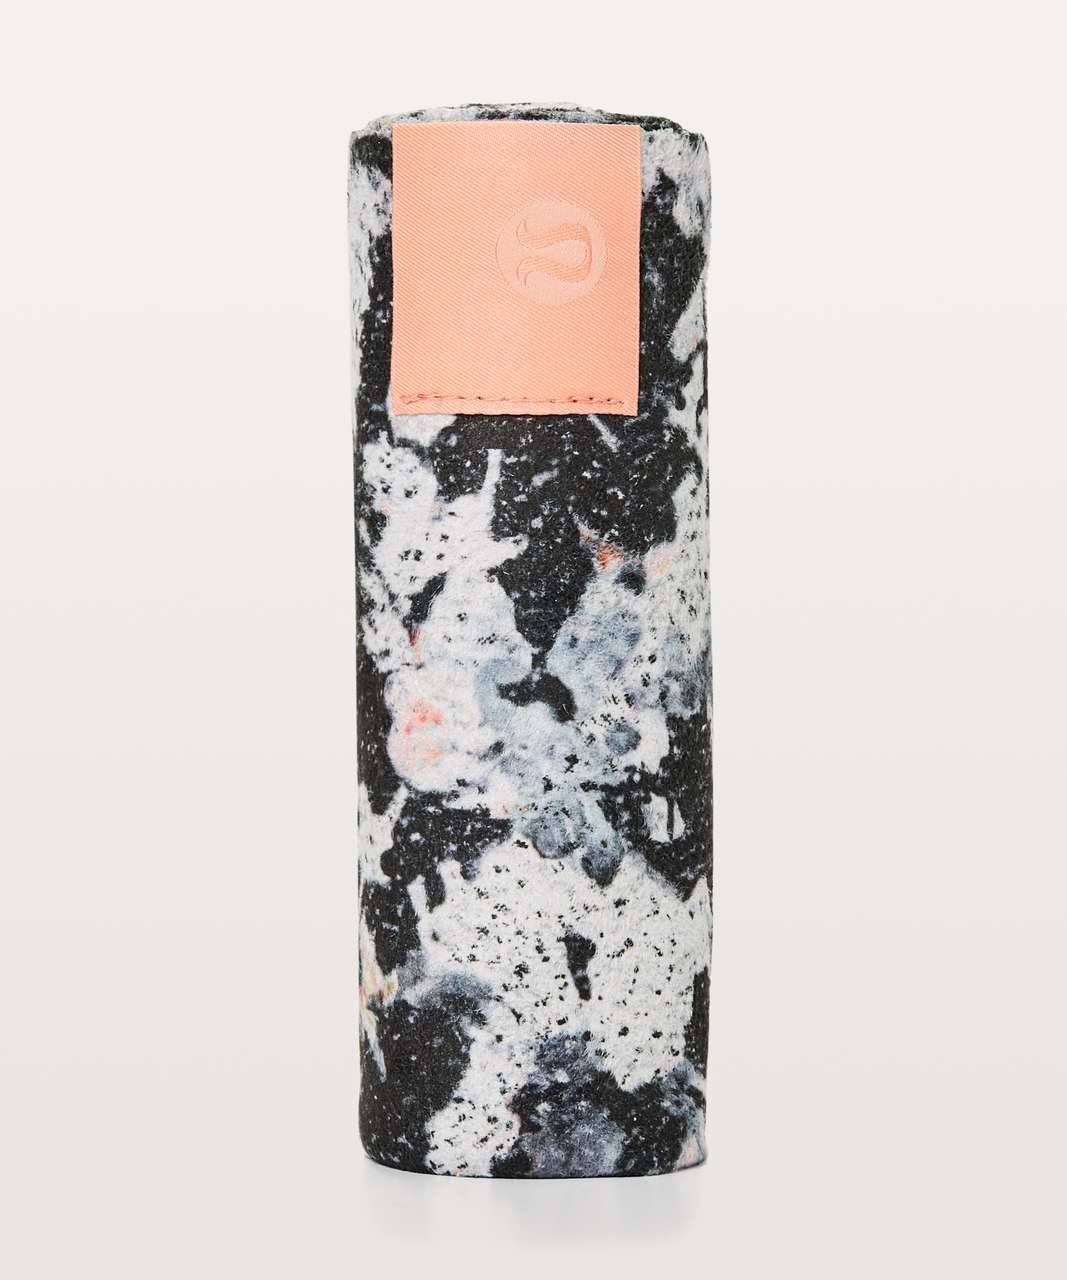 Lululemon The (Small) Towel - Spring Bloom Multi / Black